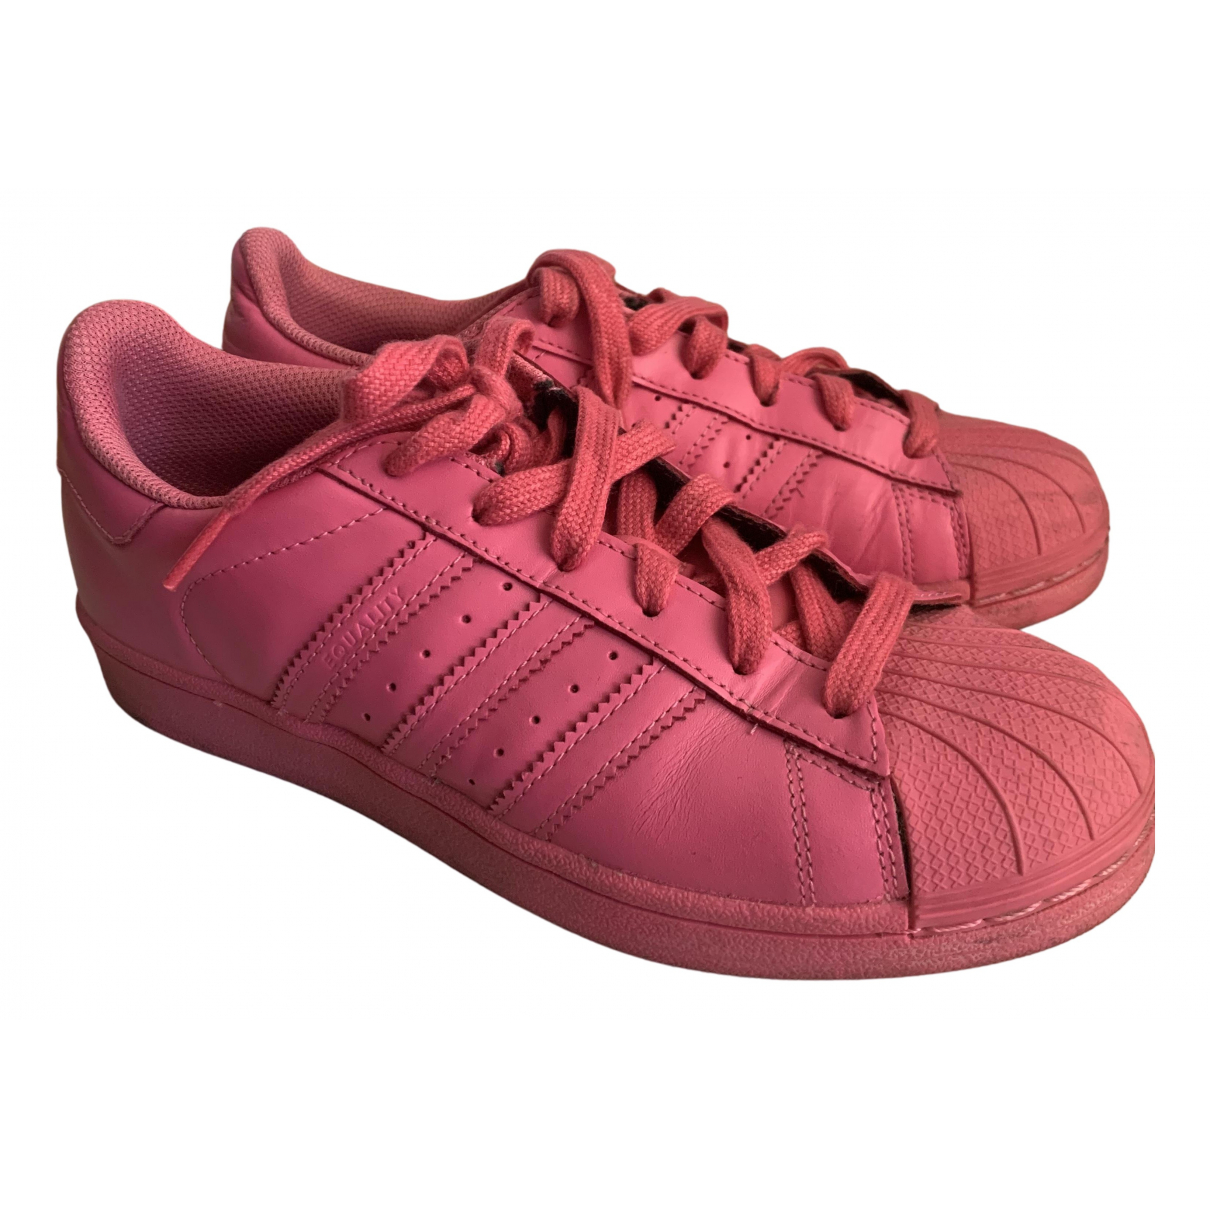 Adidas X Pharrell Williams N Pink Leather Trainers for Women 5 UK